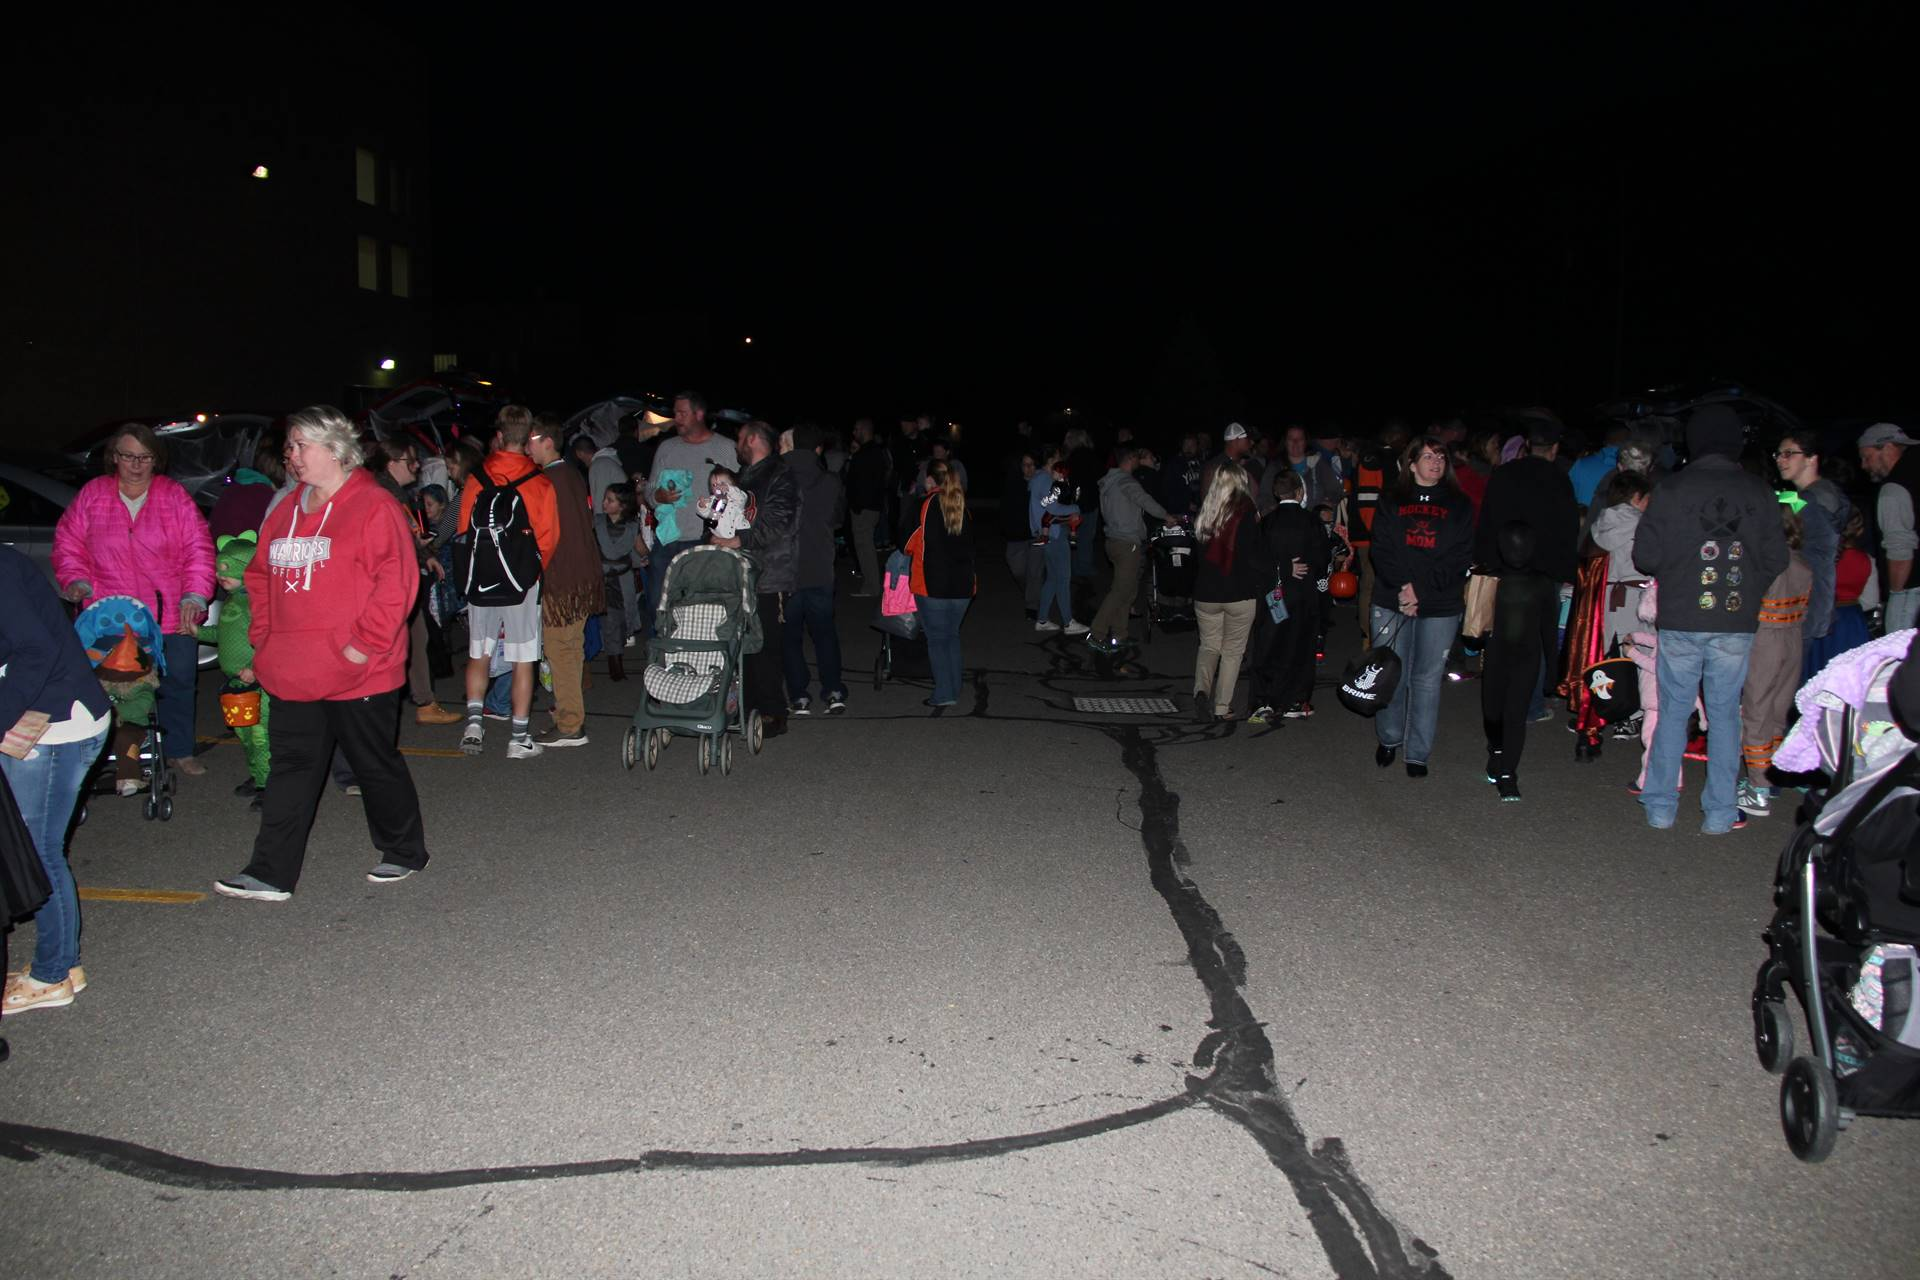 wide shot of people outside for trunk or treat event